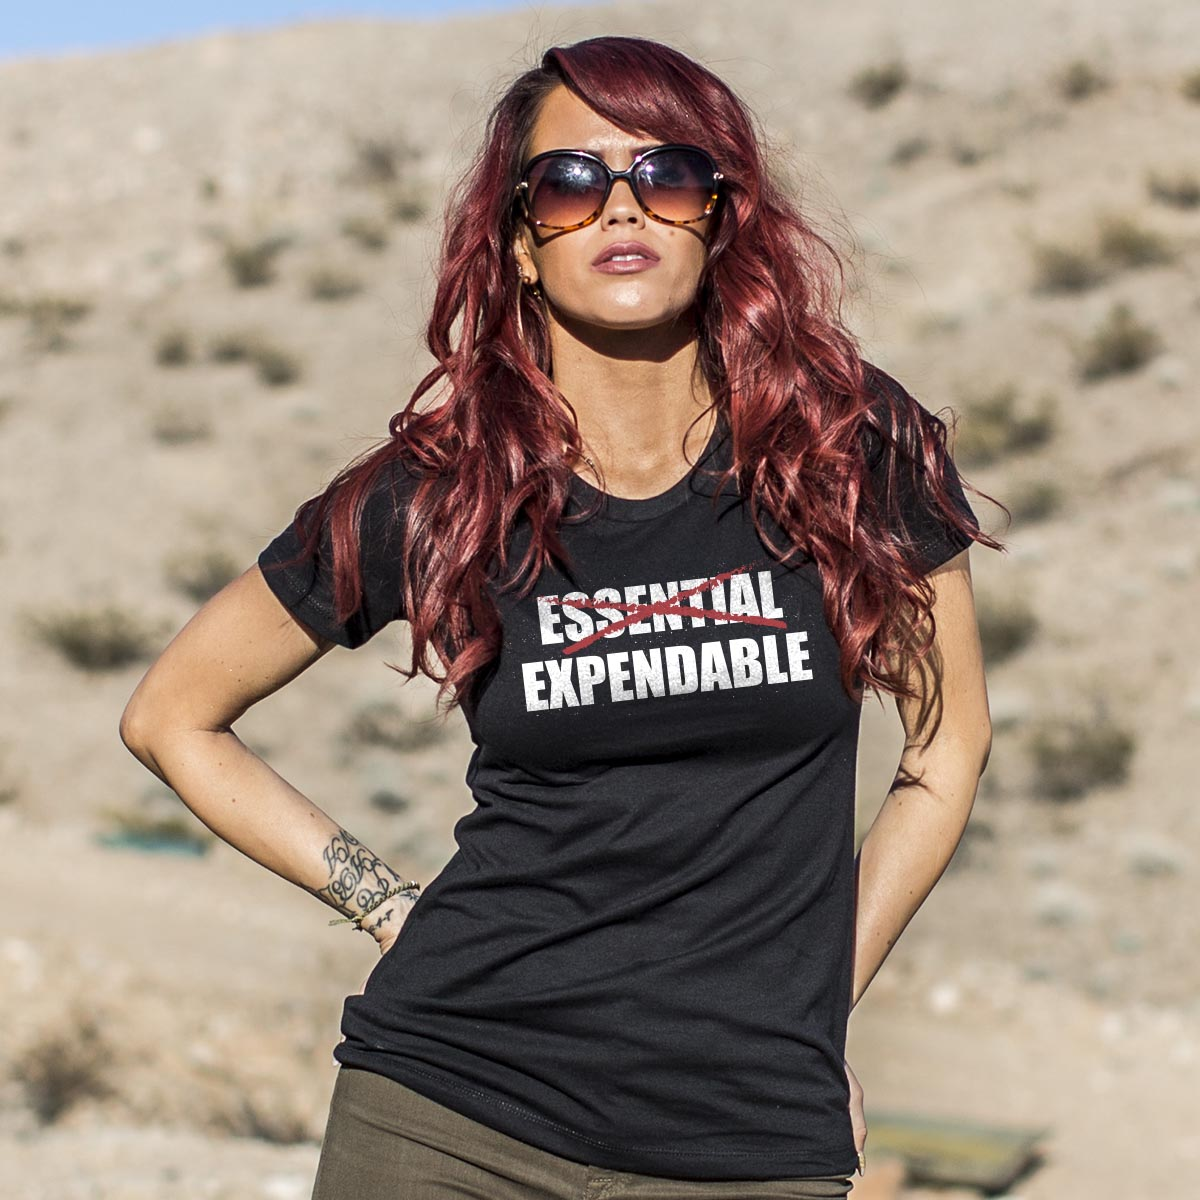 Essential < Expendable - Crew - Black - T-Shirts - Pipe Hitters Union